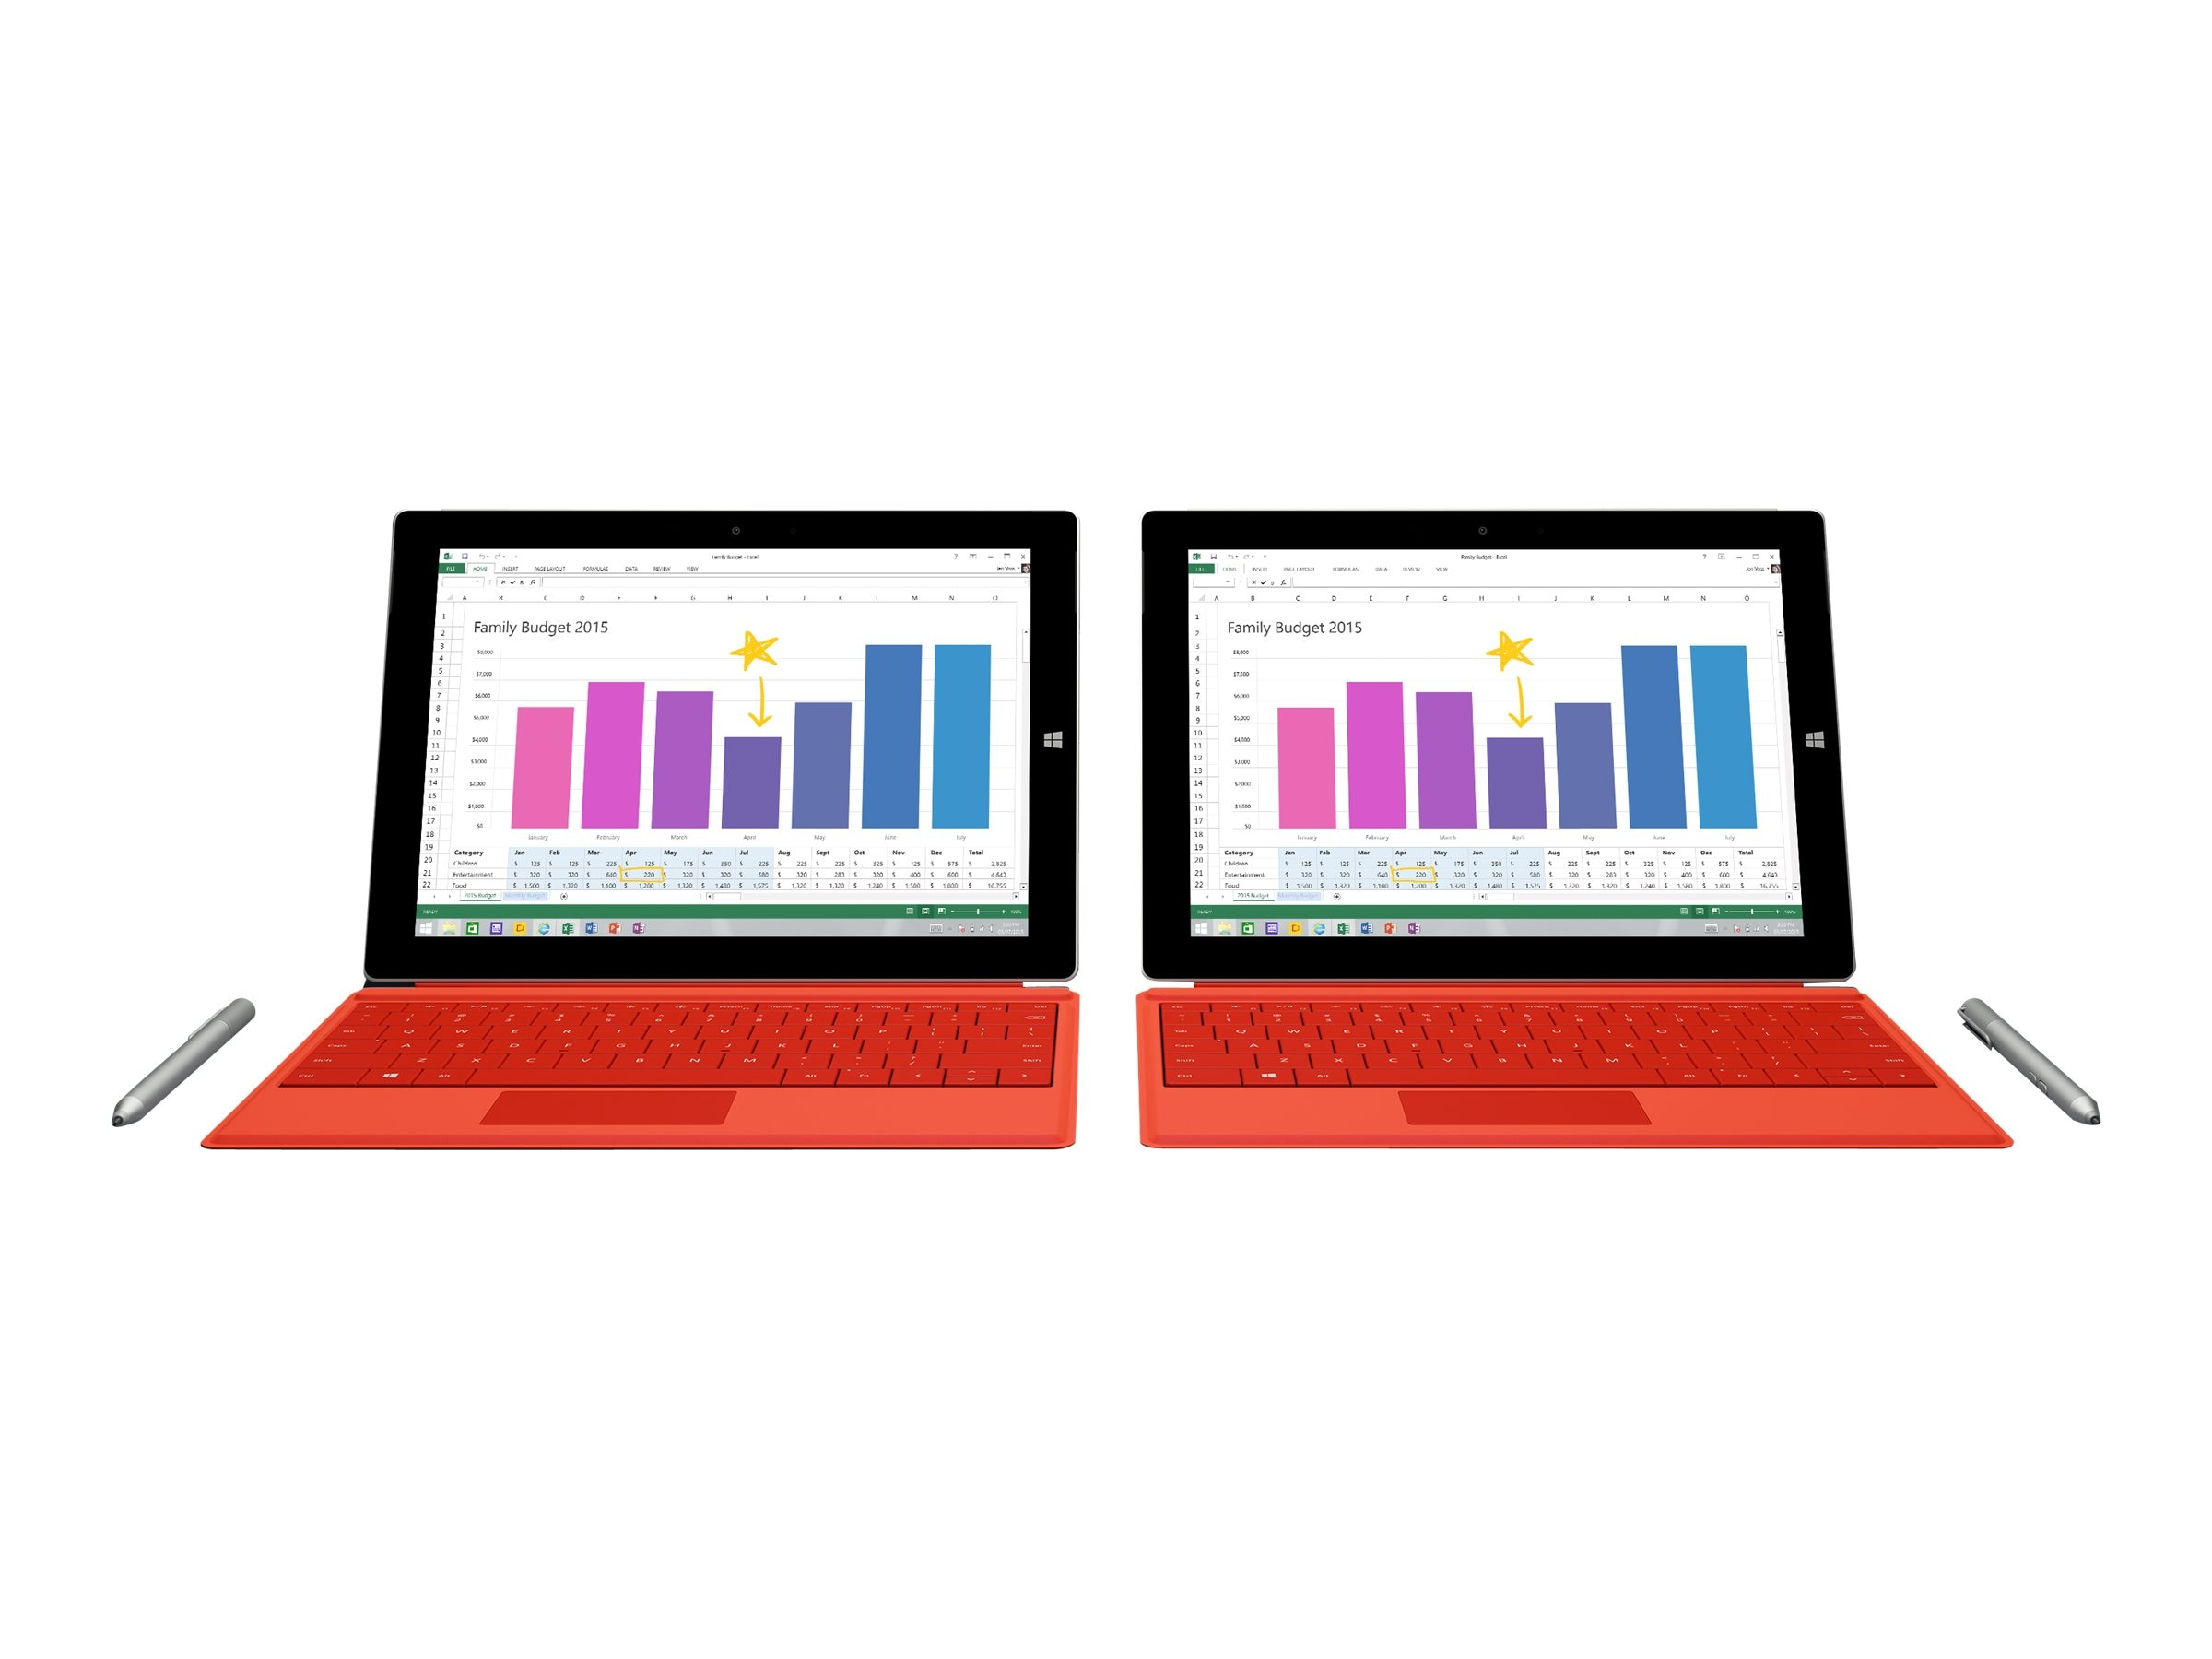 Scratch & Dent Microsoft Surface 3 Type Cover, Bright Red, GV7-00004, 30952889, Keyboards & Keypads